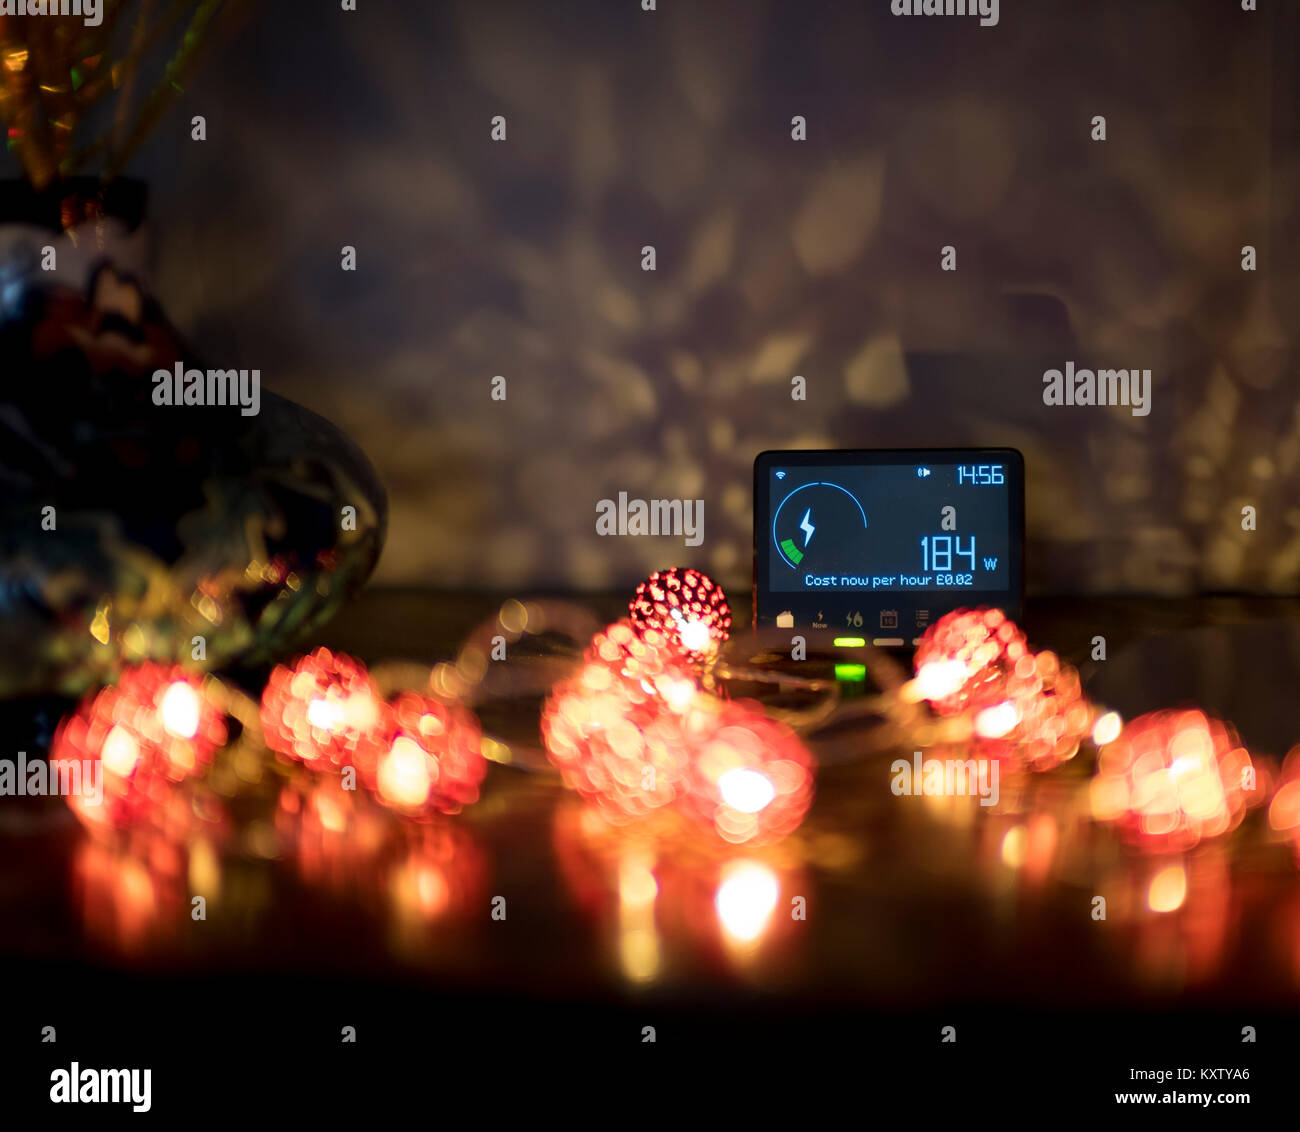 Christmas lights with smart meter measuring the output and cost to the householder. - Stock Image